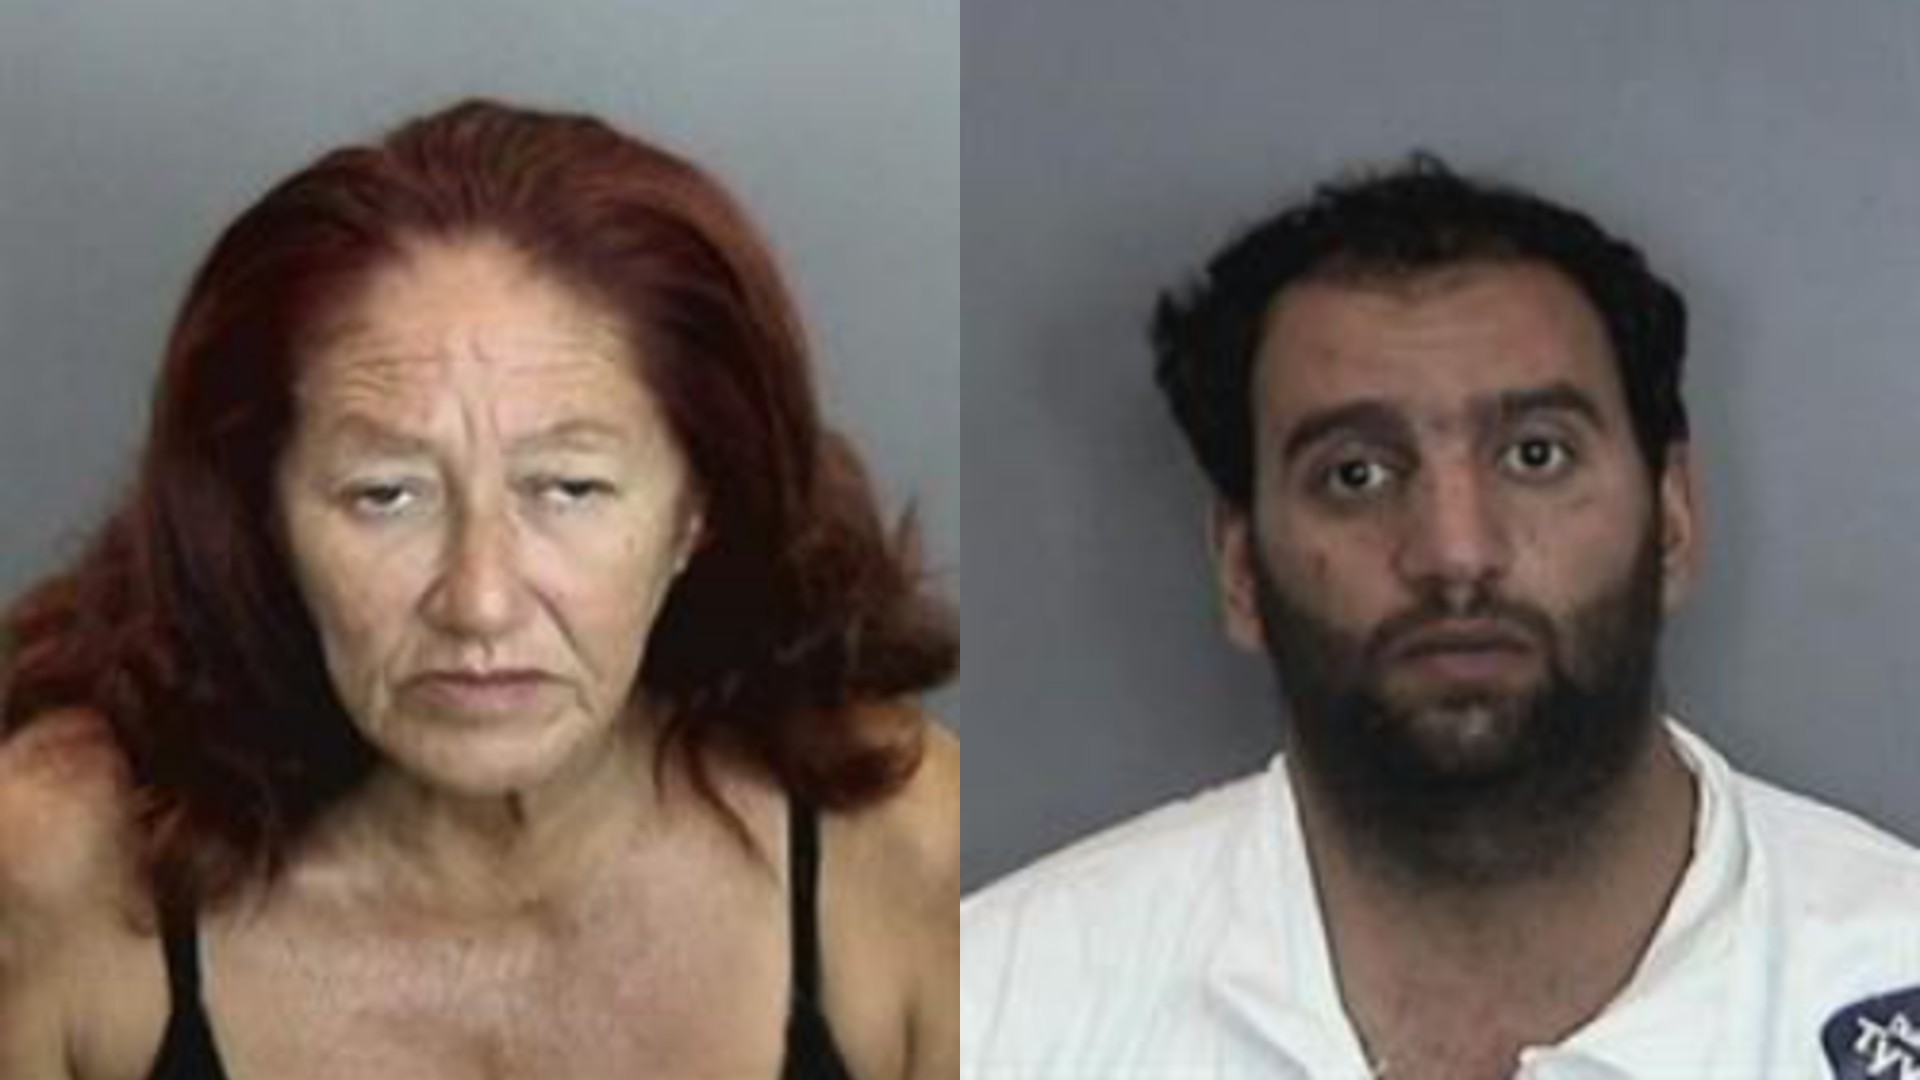 Jessie Villesca, left, and Abdulaziz Munther Alubidy, right, are seen in photos released by Anaheim police.